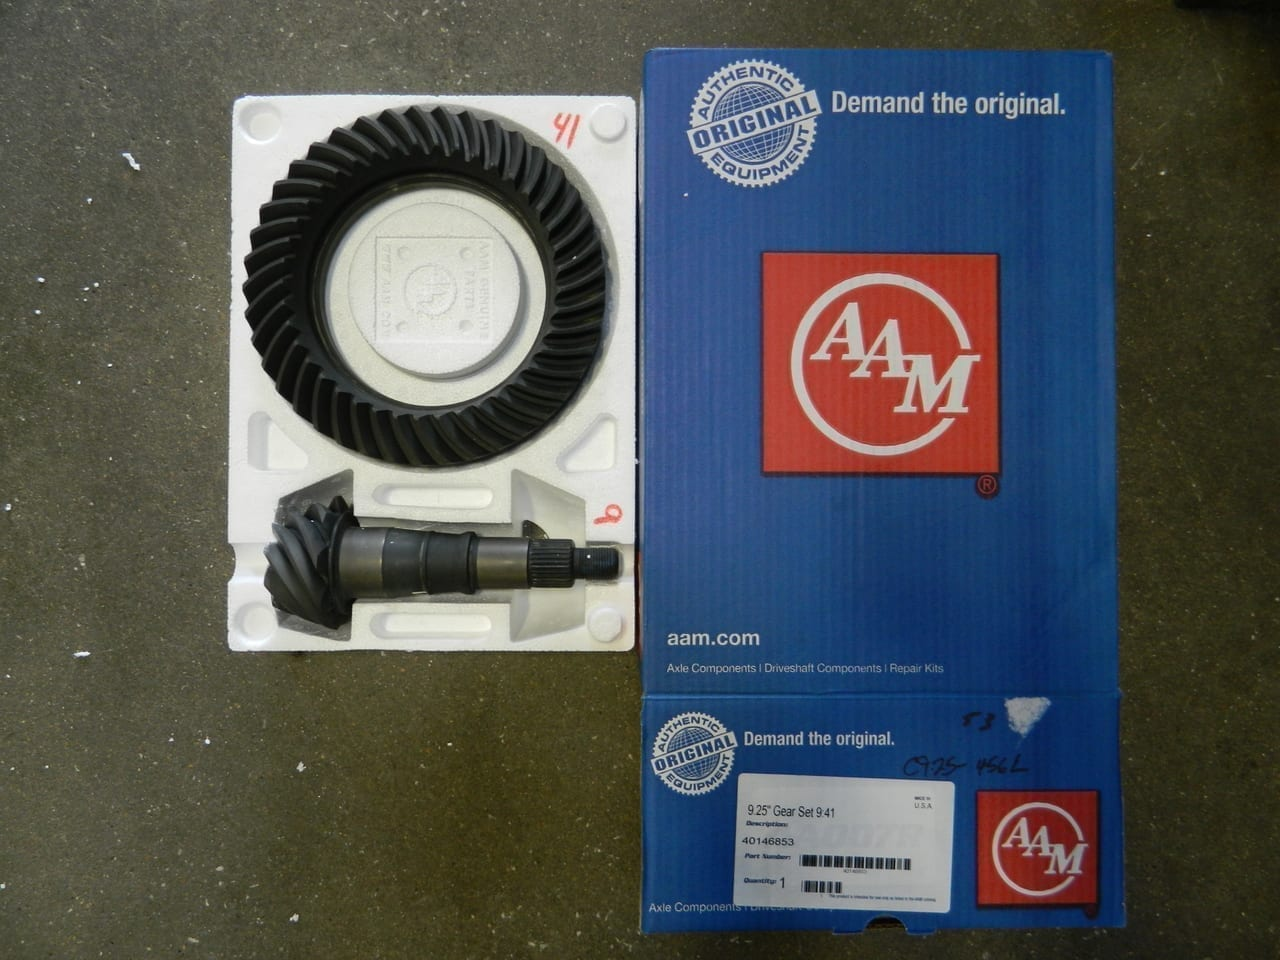 2014+ Dodge Ram 2500 3500 9.25-4:56 Ring Gear Pinion Gear Set AAM 4X4 Front